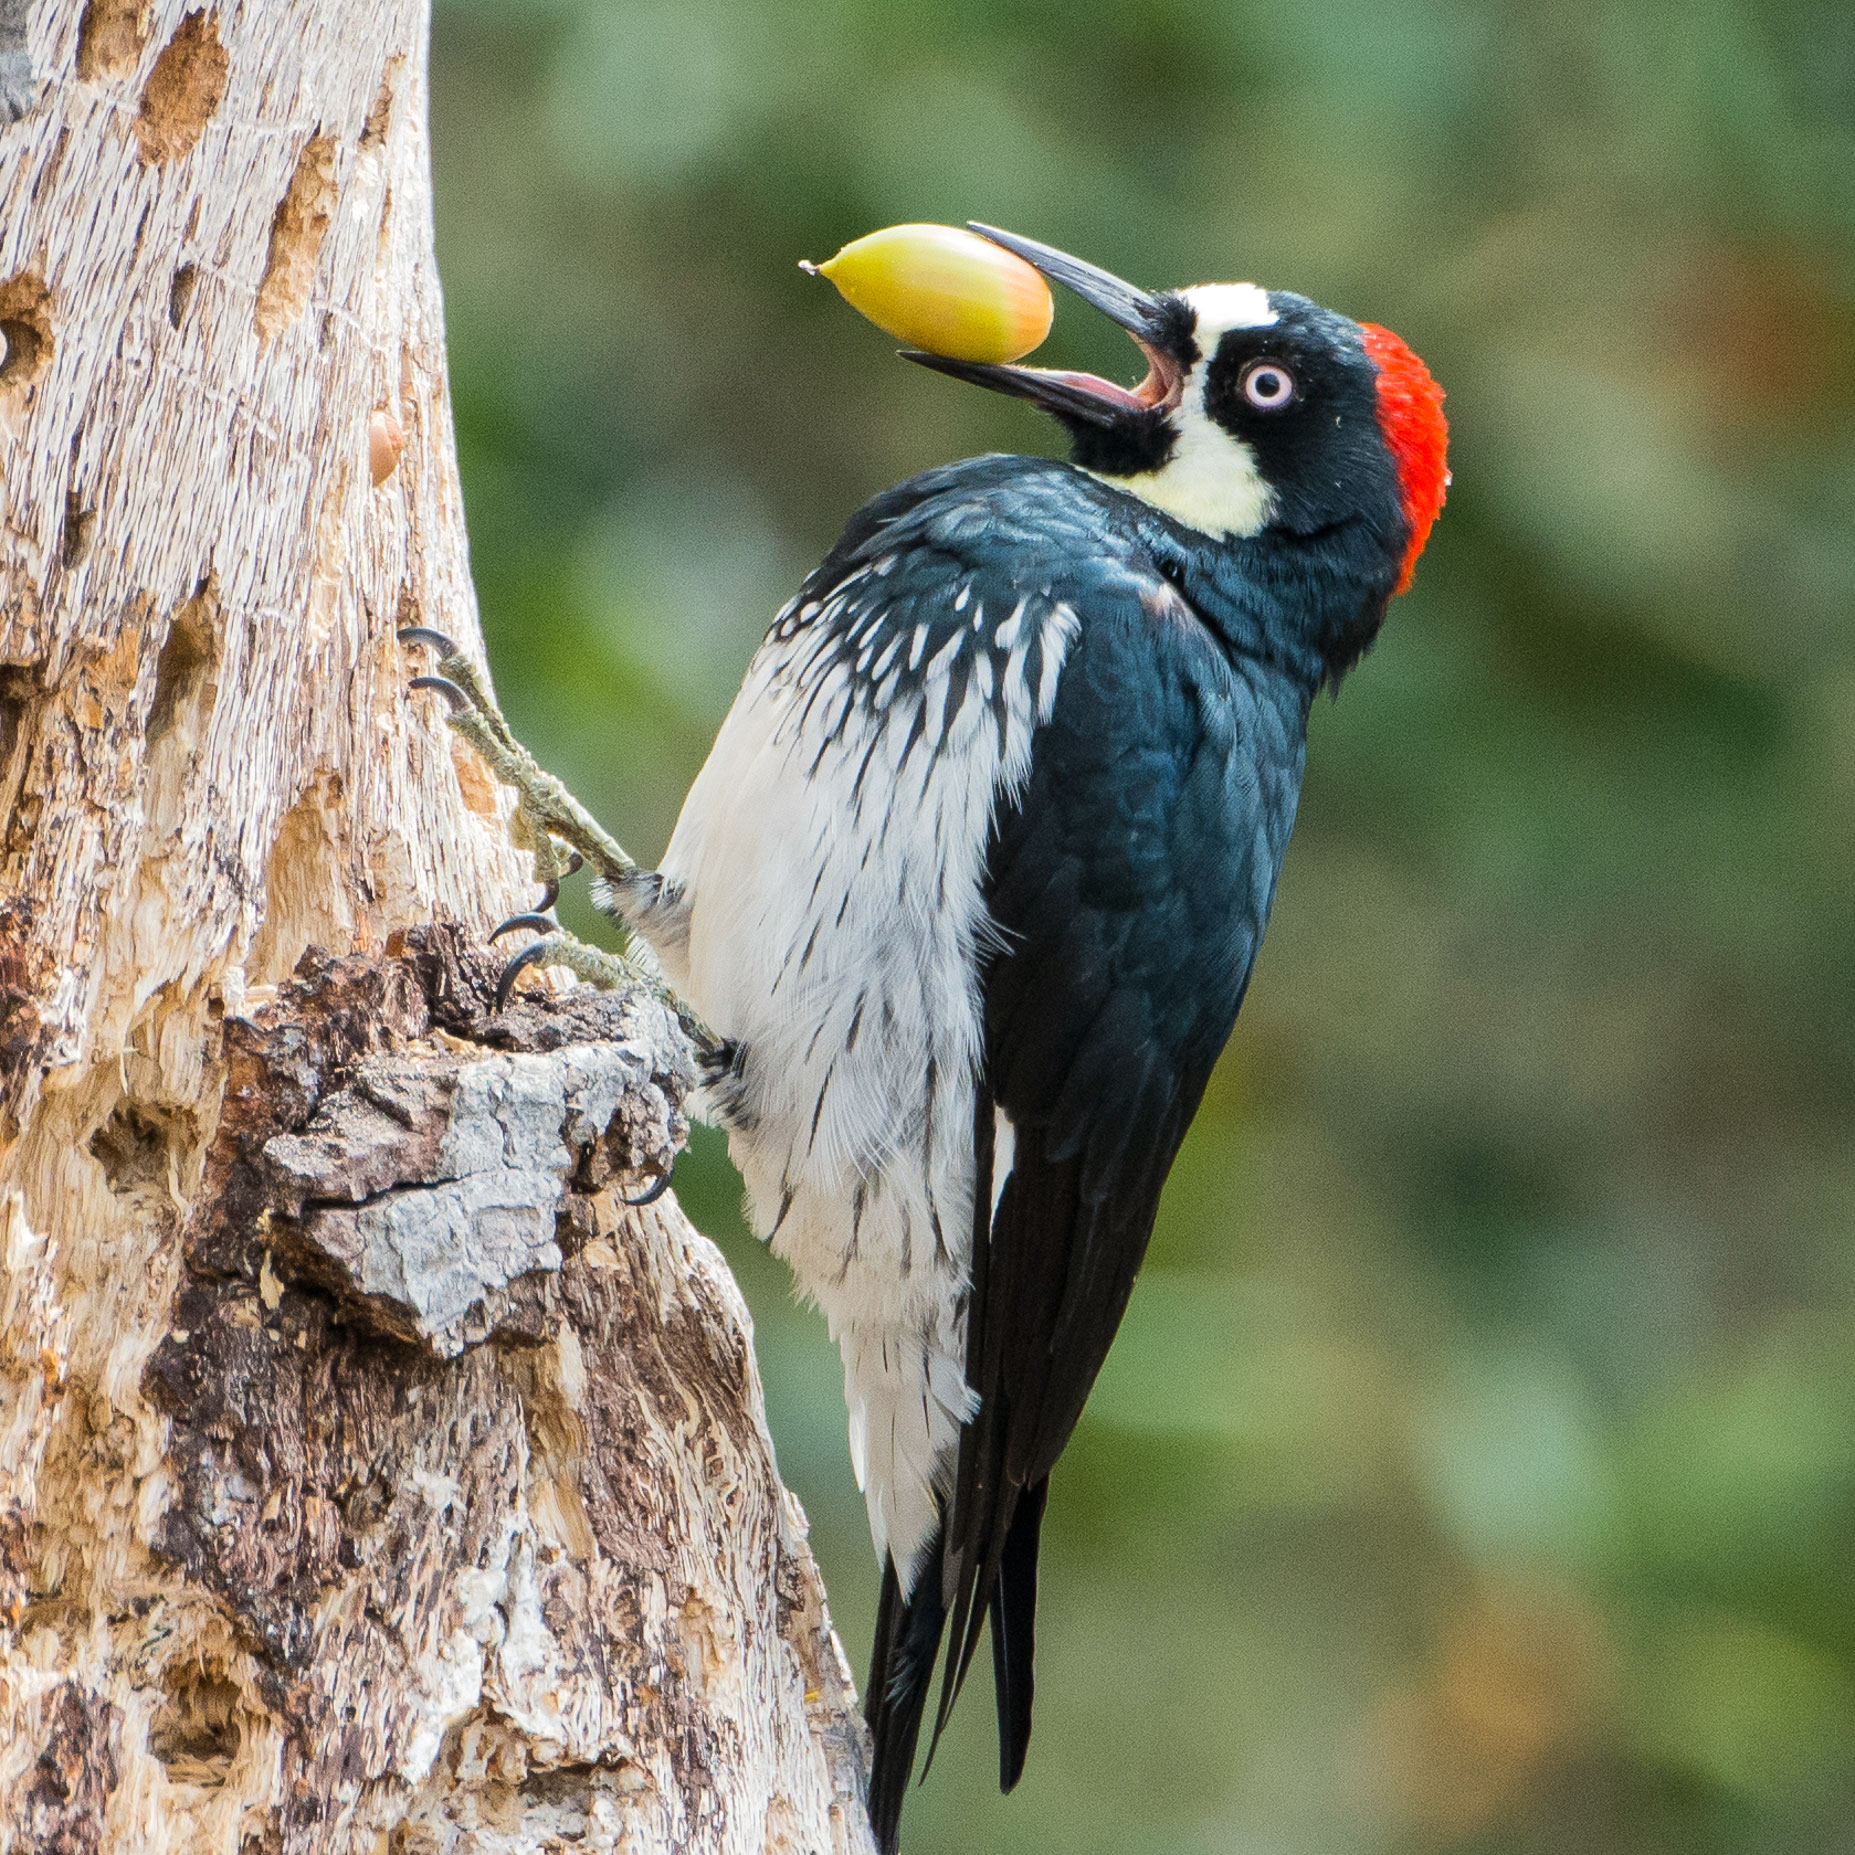 Don't let the Acorn Woodpecker's clownlike appearance fool you. These birds can scrap. Heather Roskelley/Audubon Photography Awards